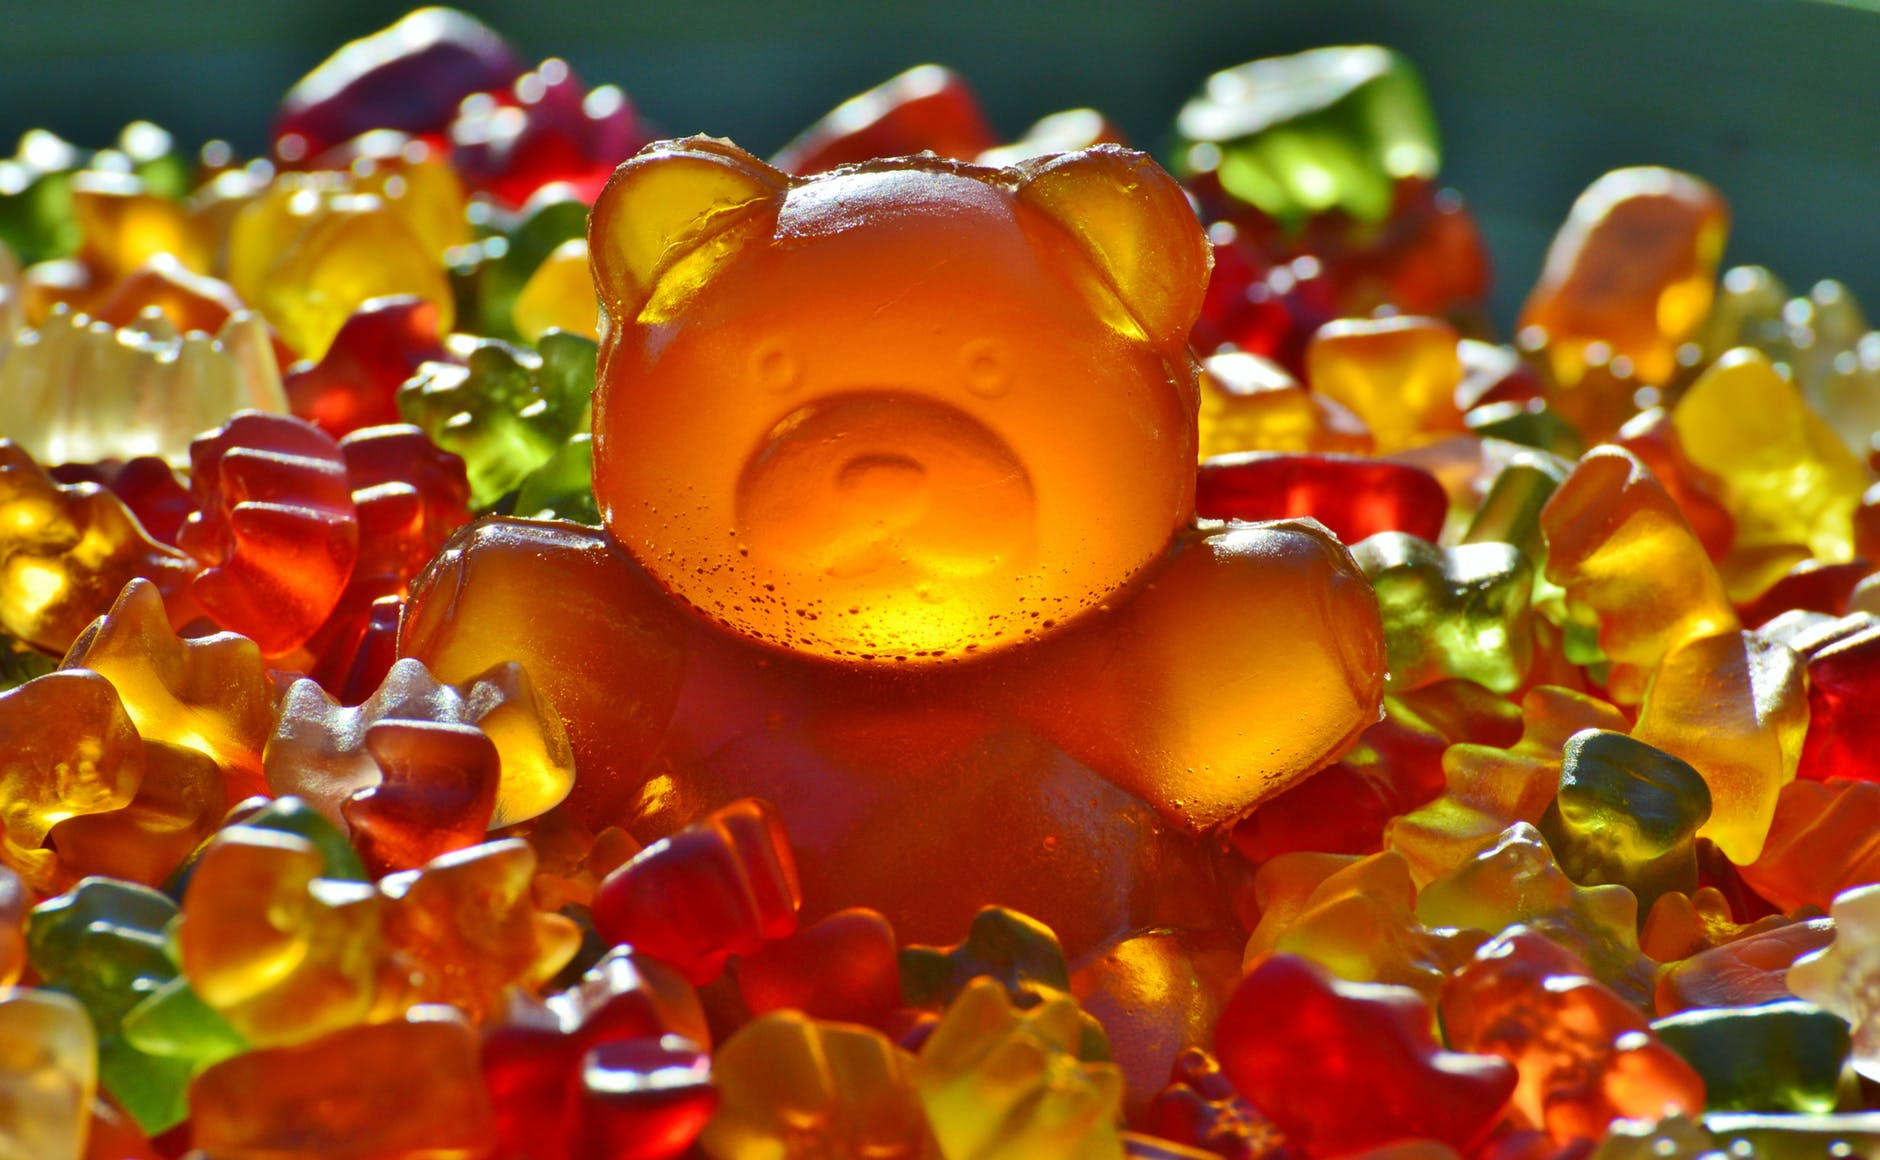 https://www.ekaenlinea.com/wp-content/uploads/2018/07/giant-rubber-bear-gummibar-gummibarchen-fruit-gums.jpg